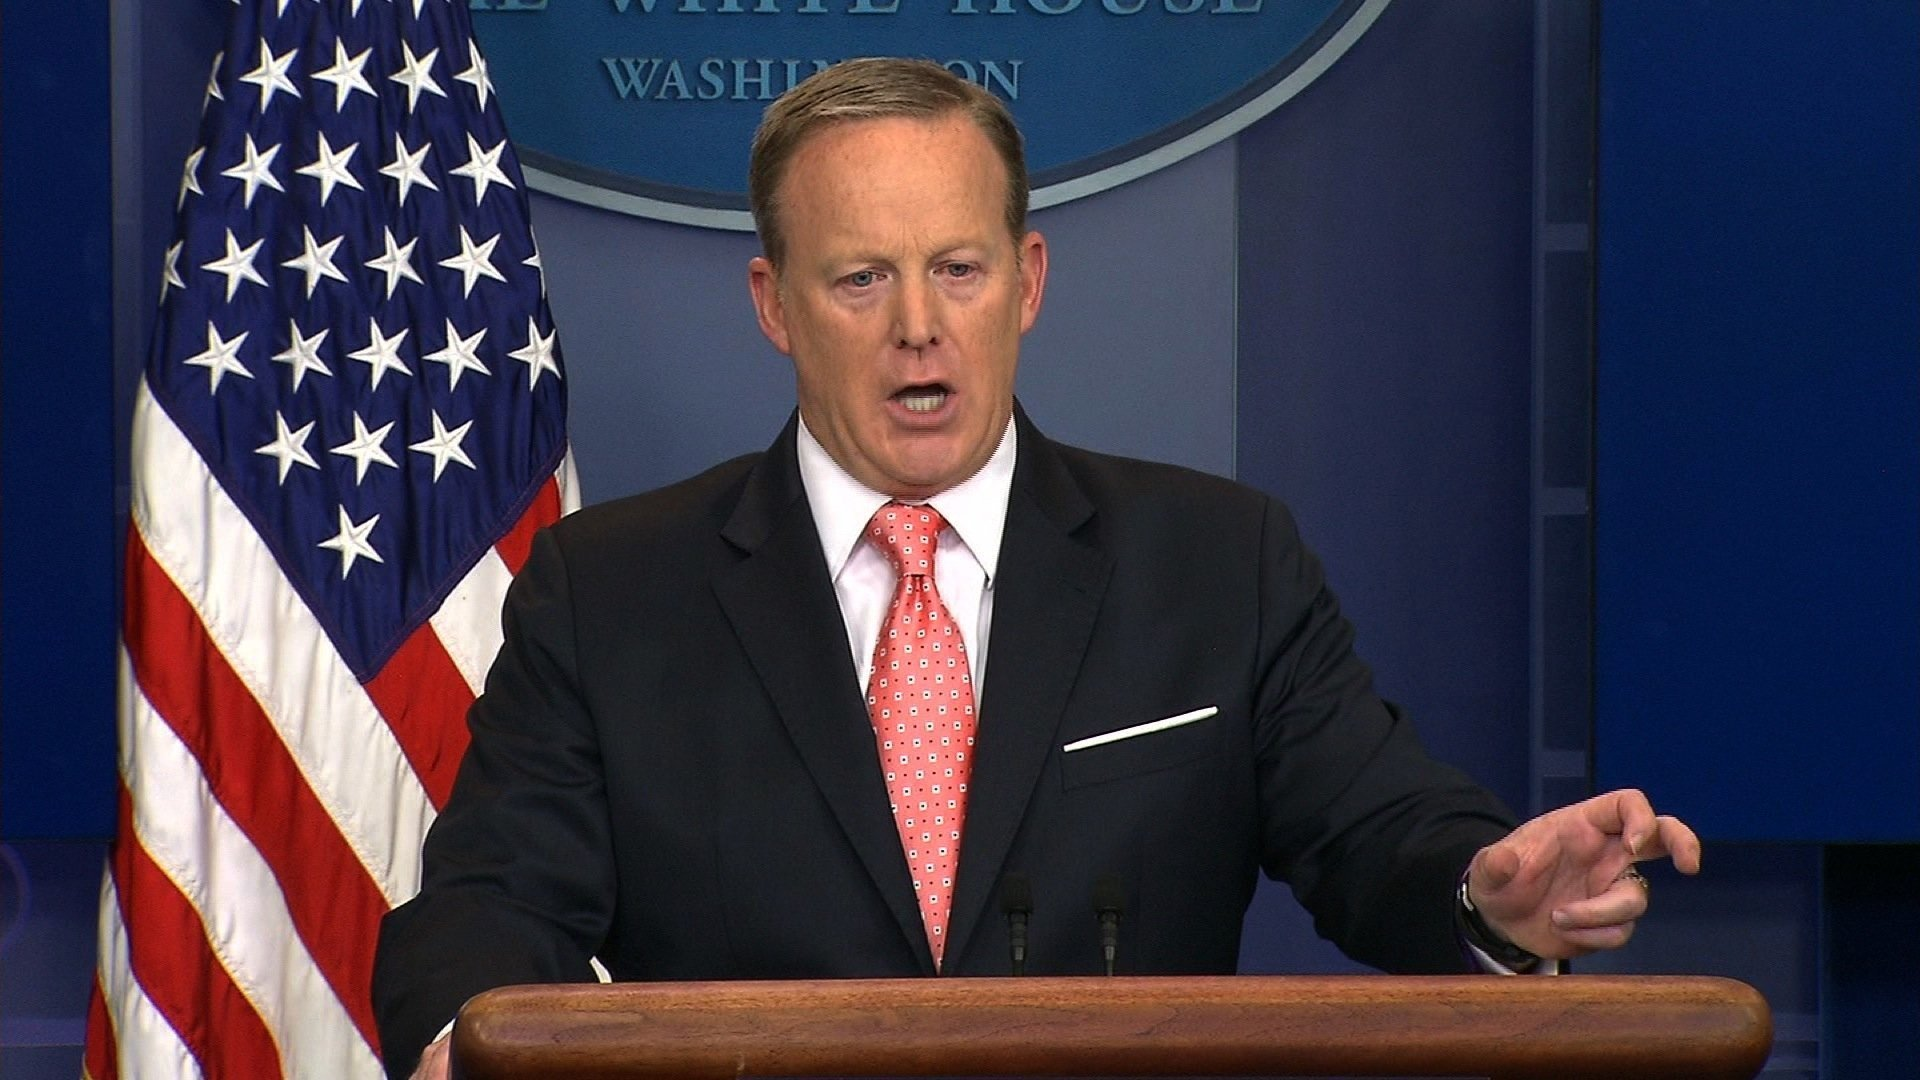 Spicer took questions for less than 15 minutes that day, which is not atypical lately. Brevity has become perhaps the defining feature of the briefing these days.  White House press secretary Sean Spicer said June 6, 2017 President Donald Trump's...